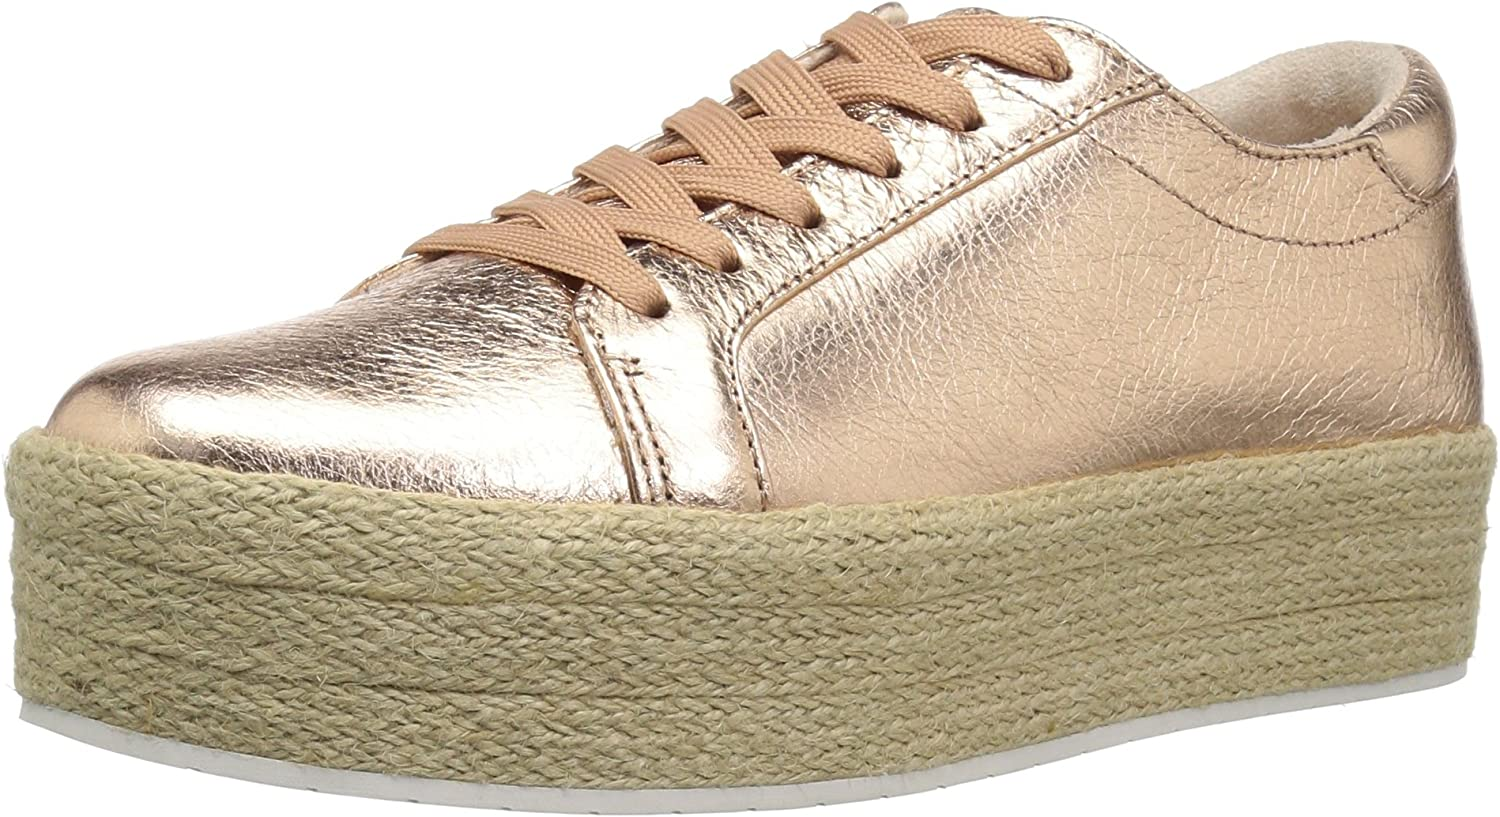 Kenneth Cole New York Womens Allyson Platform Lace Up Sneaker with Jute Wrap- Techni-Cole Sneaker